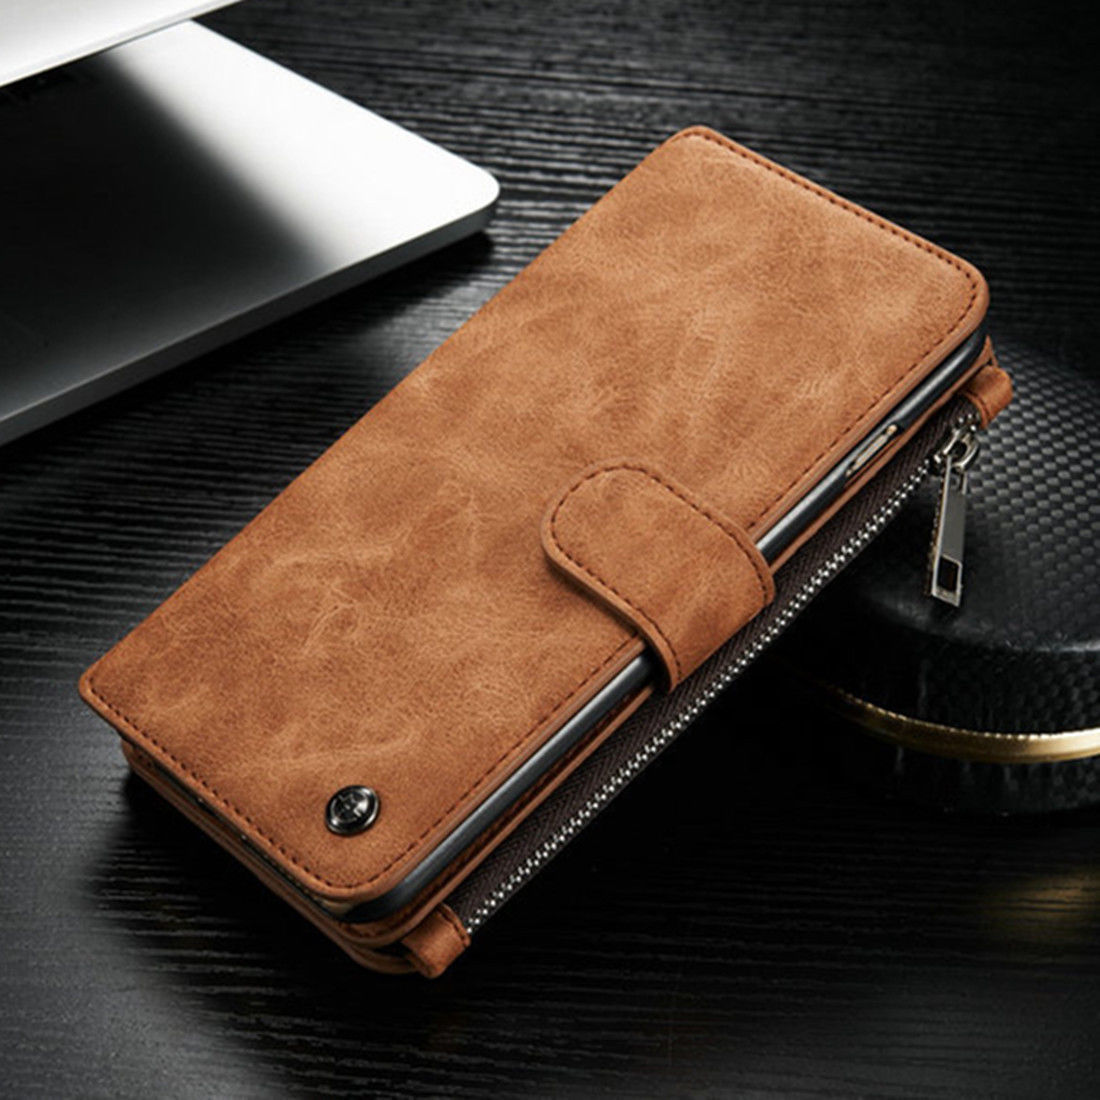 new york 5164f 1d51c US $8.54 5% OFF|Flip Zipper Men Purse Wallet Leather Luxury Case For iPhone  5s SE 6 6s 7 Plus Card Slot Holder Bag Cover For Samsung S6 S7 Edge-in ...